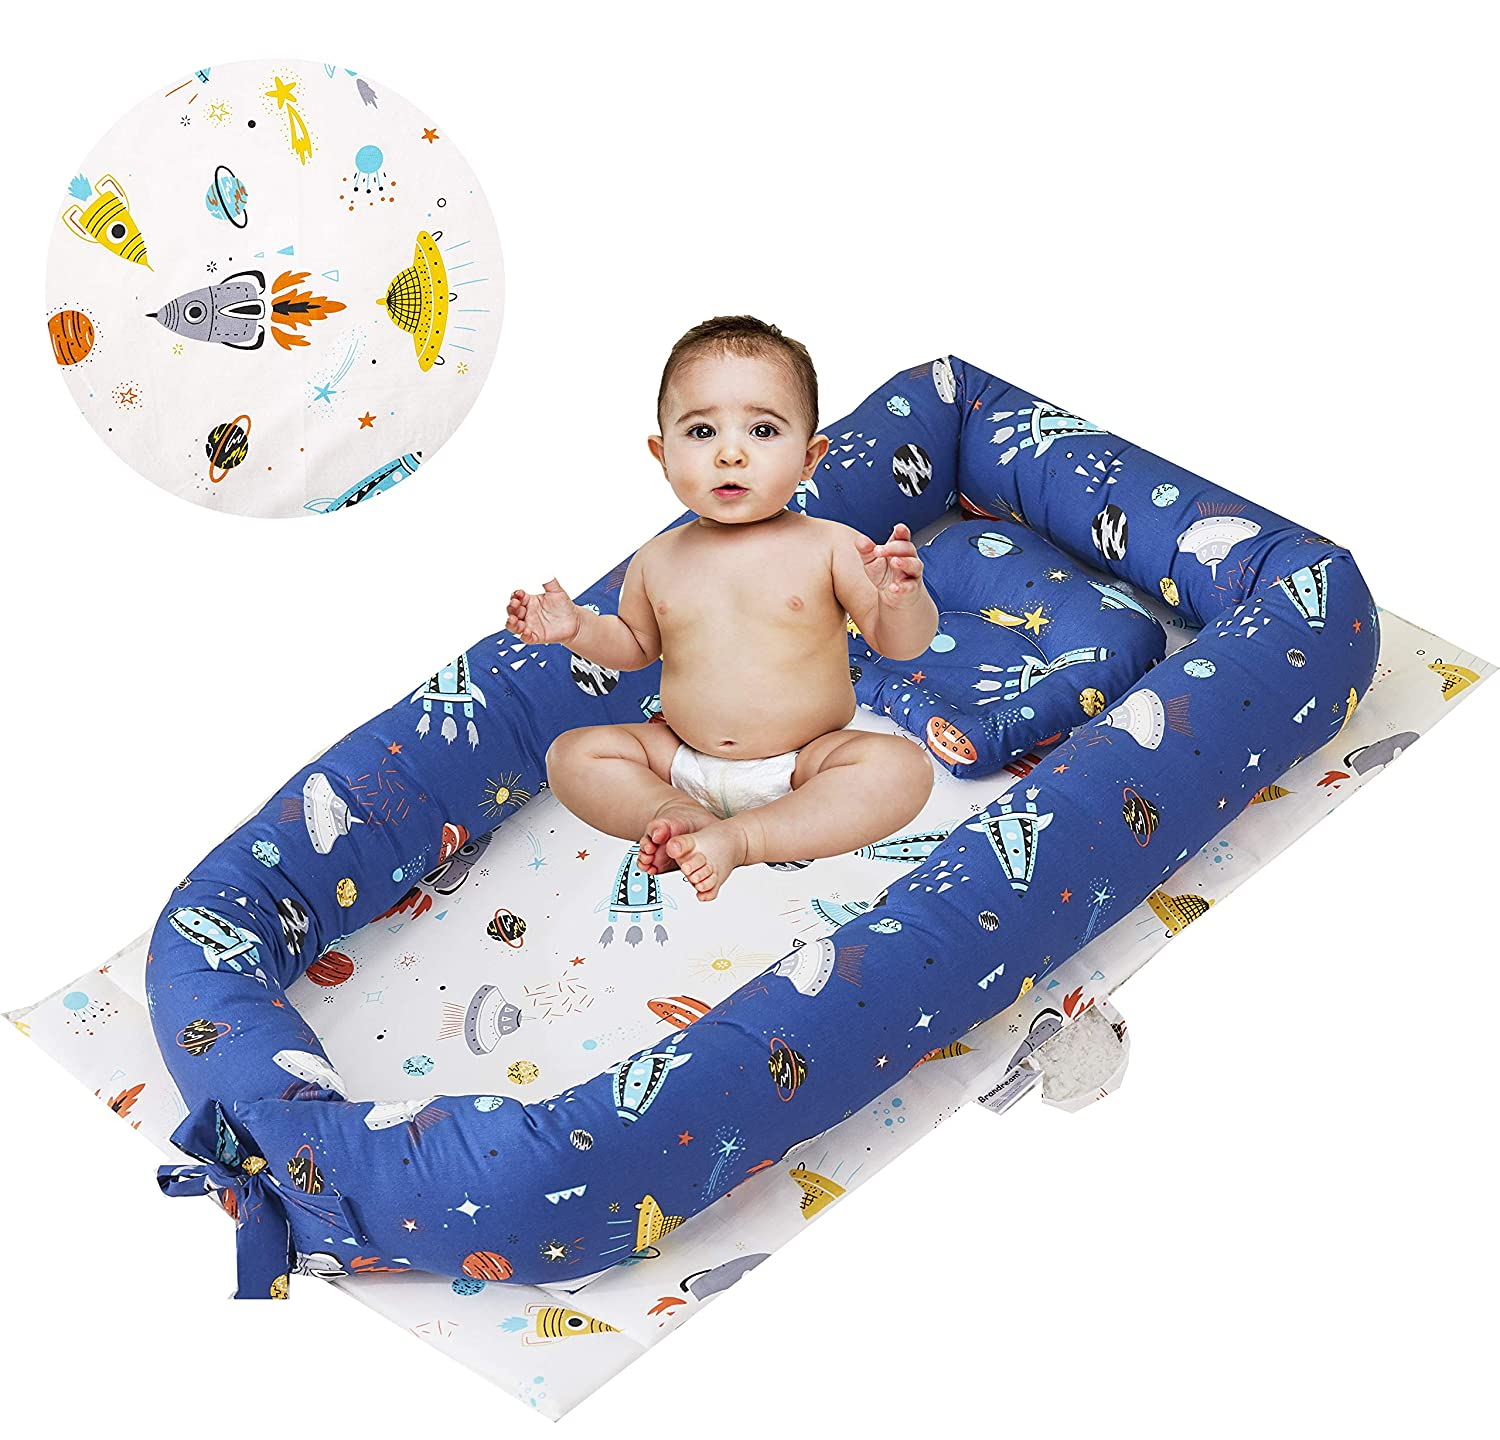 Brandream Baby Nest Bed Navy Blue Newborn Lounger Outer Space Portable Sharing Bed with Galaxy, Rocket& Planet Perfect for Co-Sleeping 100% Cotton Breathable & Hypoallergenic